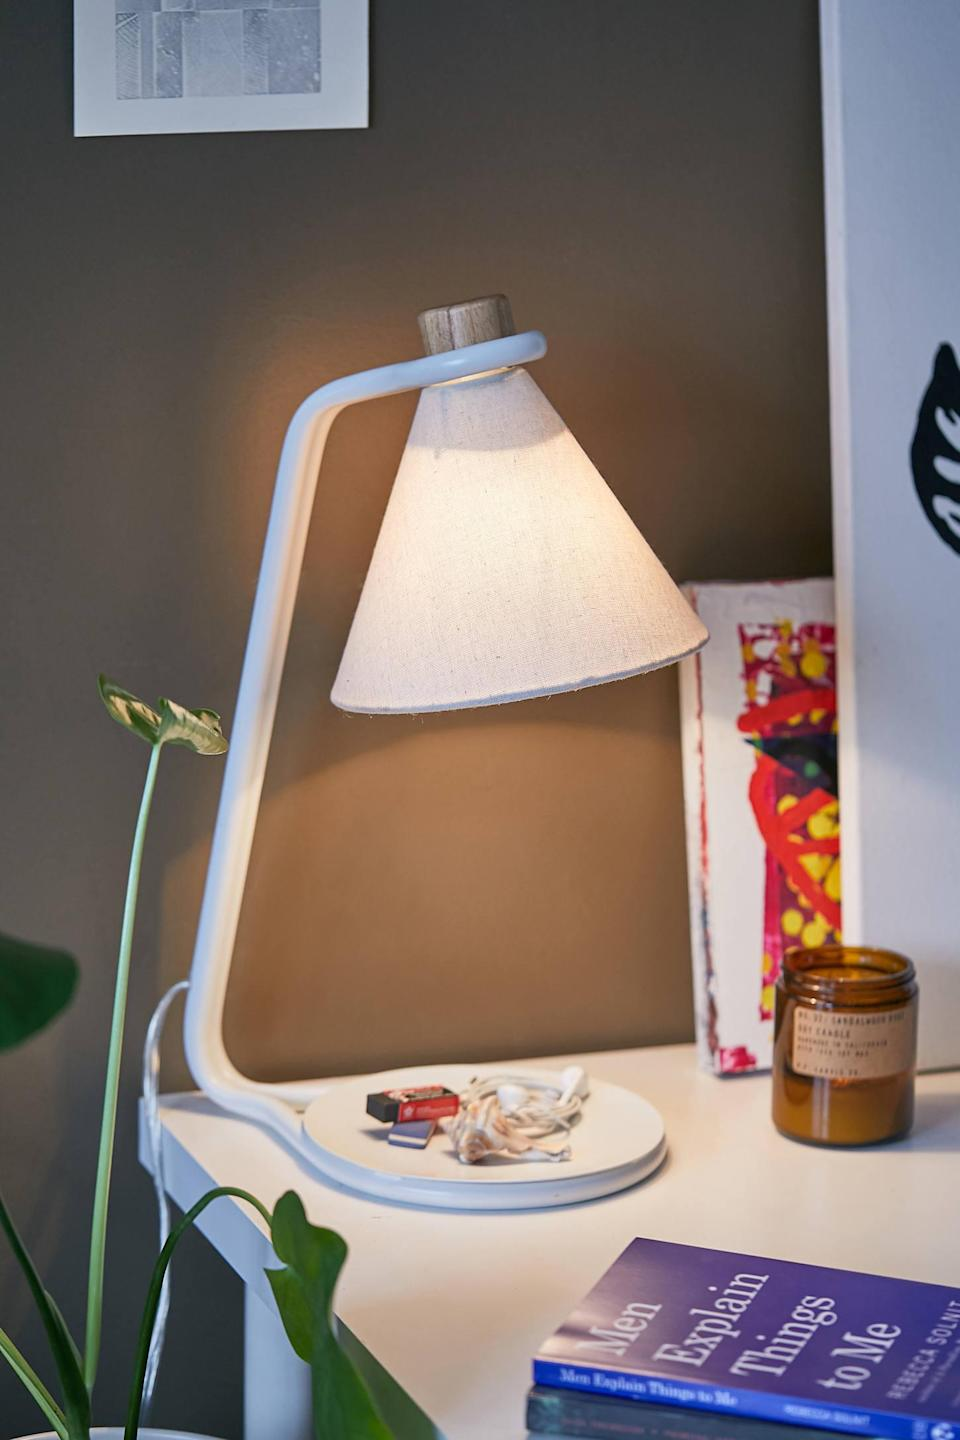 "<h2>Hayes Desk Lamp</h2><br>A lamp that doubles as a brightener and catch-all storage container. <br><br><strong>Urban Outfitters</strong> Hayes Desk Lamp, $, available at <a href=""https://go.skimresources.com/?id=30283X879131&url=https%3A%2F%2Fwww.urbanoutfitters.com%2Fshop%2Fhayes-desk-lamp%3F"" rel=""nofollow noopener"" target=""_blank"" data-ylk=""slk:Urban Outfitters"" class=""link rapid-noclick-resp"">Urban Outfitters</a>"